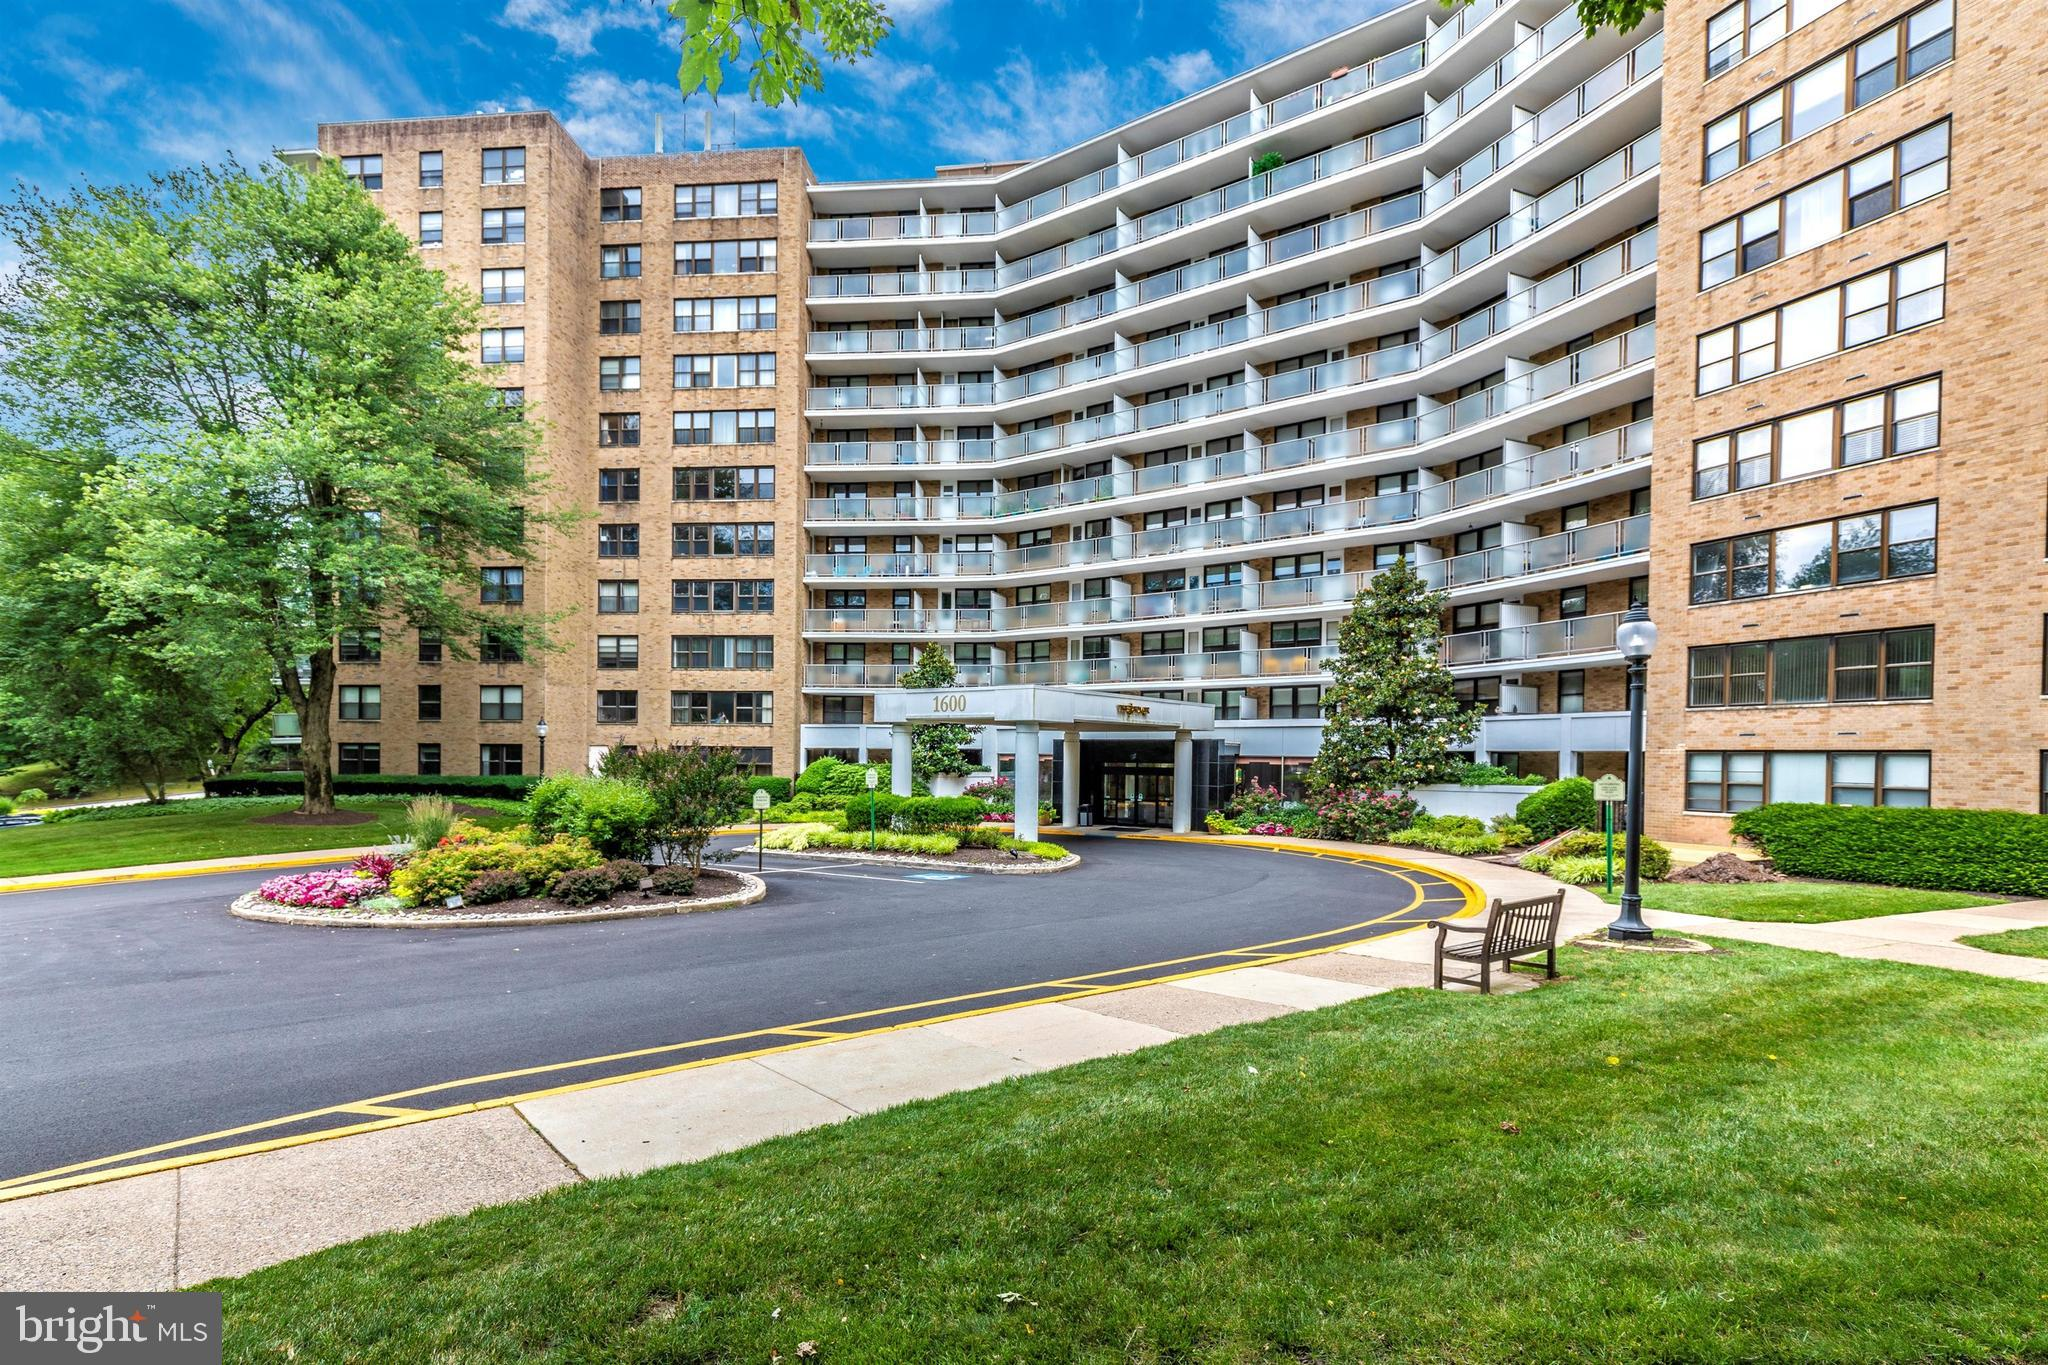 """NEW LISTING TOWER AT 'OAK HILL' NEAR PHILA!! Located at """"The Tower at Oak Hill Condominium', Penn Valley, Pa. This is a Large 1 Bedroom home  with  separate  1/2 baths.  The home boasts beautiful hardwood  floors,  Open kitchen with tiled  counter tops and breakfast bar,  New stainless steel refrigerator, and NEW dishwasher,  FULL SIZE  washer and dryer, gas cook top and wall oven The bathroom  (tub has handicapped grab bars) is part of the bedroom suite. Also  a walk in closet. This home offers a Large living room and a  dining room. custom lighting, some new windows have been installed  The large Sun drenched corner balcony overlooks the pool. 'The Oak Hill Tower' offers 2 gyms, 24 hour doorman, basement storage and Lower Merion School District bus at front door. Condo dues include Air conditioning and Heat by convectors, water, common area maintenance, trash and snow removal, exterior maintenance, common area insurance and cooking gas. pool access. Special bulk cable only 91 month. $250 move in fee and $500 elevator deposit Great Opportunity for  easy living  Minutes to center city Phila. via xway. Bus 44 at front door."""